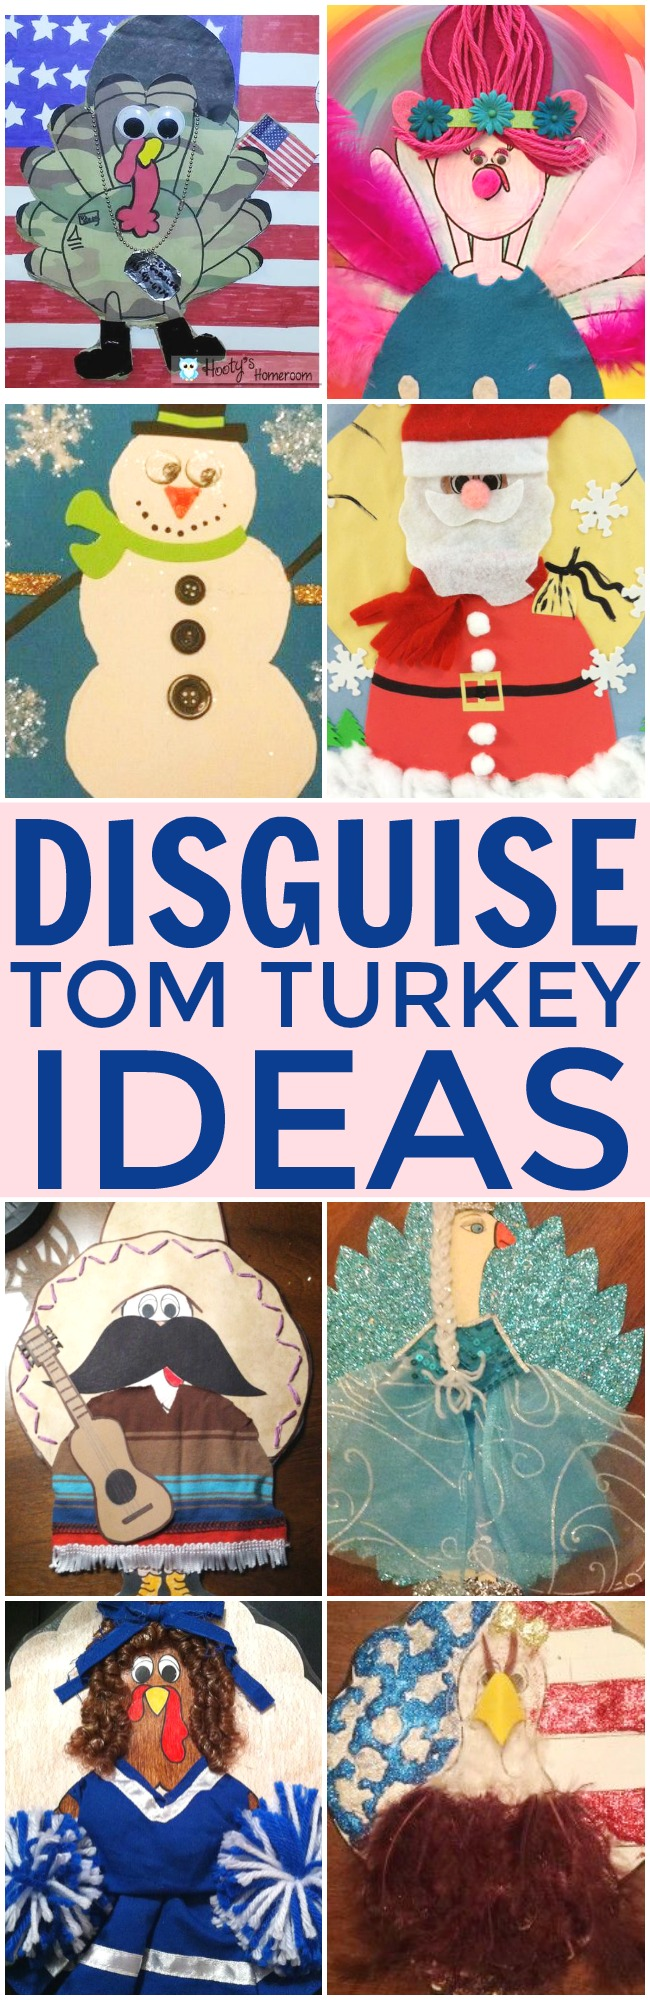 Help save Tom from getting eaten this Thanksgiving with these fun ideas to disguise Tom turkey. A great imaginative craft for the whole family. #Thanksgiving #TurkeyDay #DisguiseTomTurkey #DisguiseTurkey